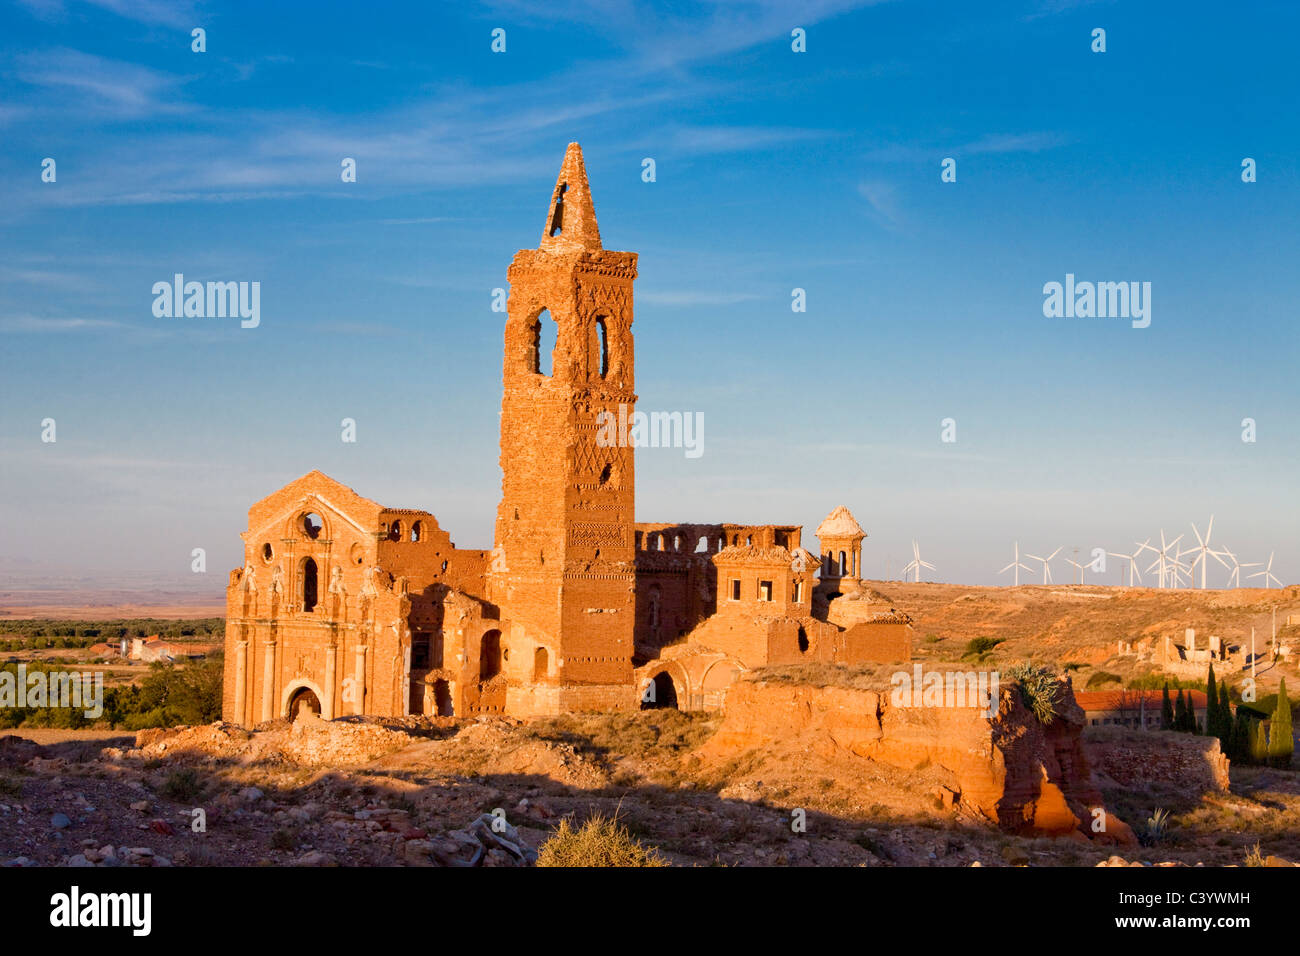 Spain, Europe, Aragon, wind farm, wind energy, wind turbine, energy, Belchite, ecological, ruins, tower, rook, old, - Stock Image